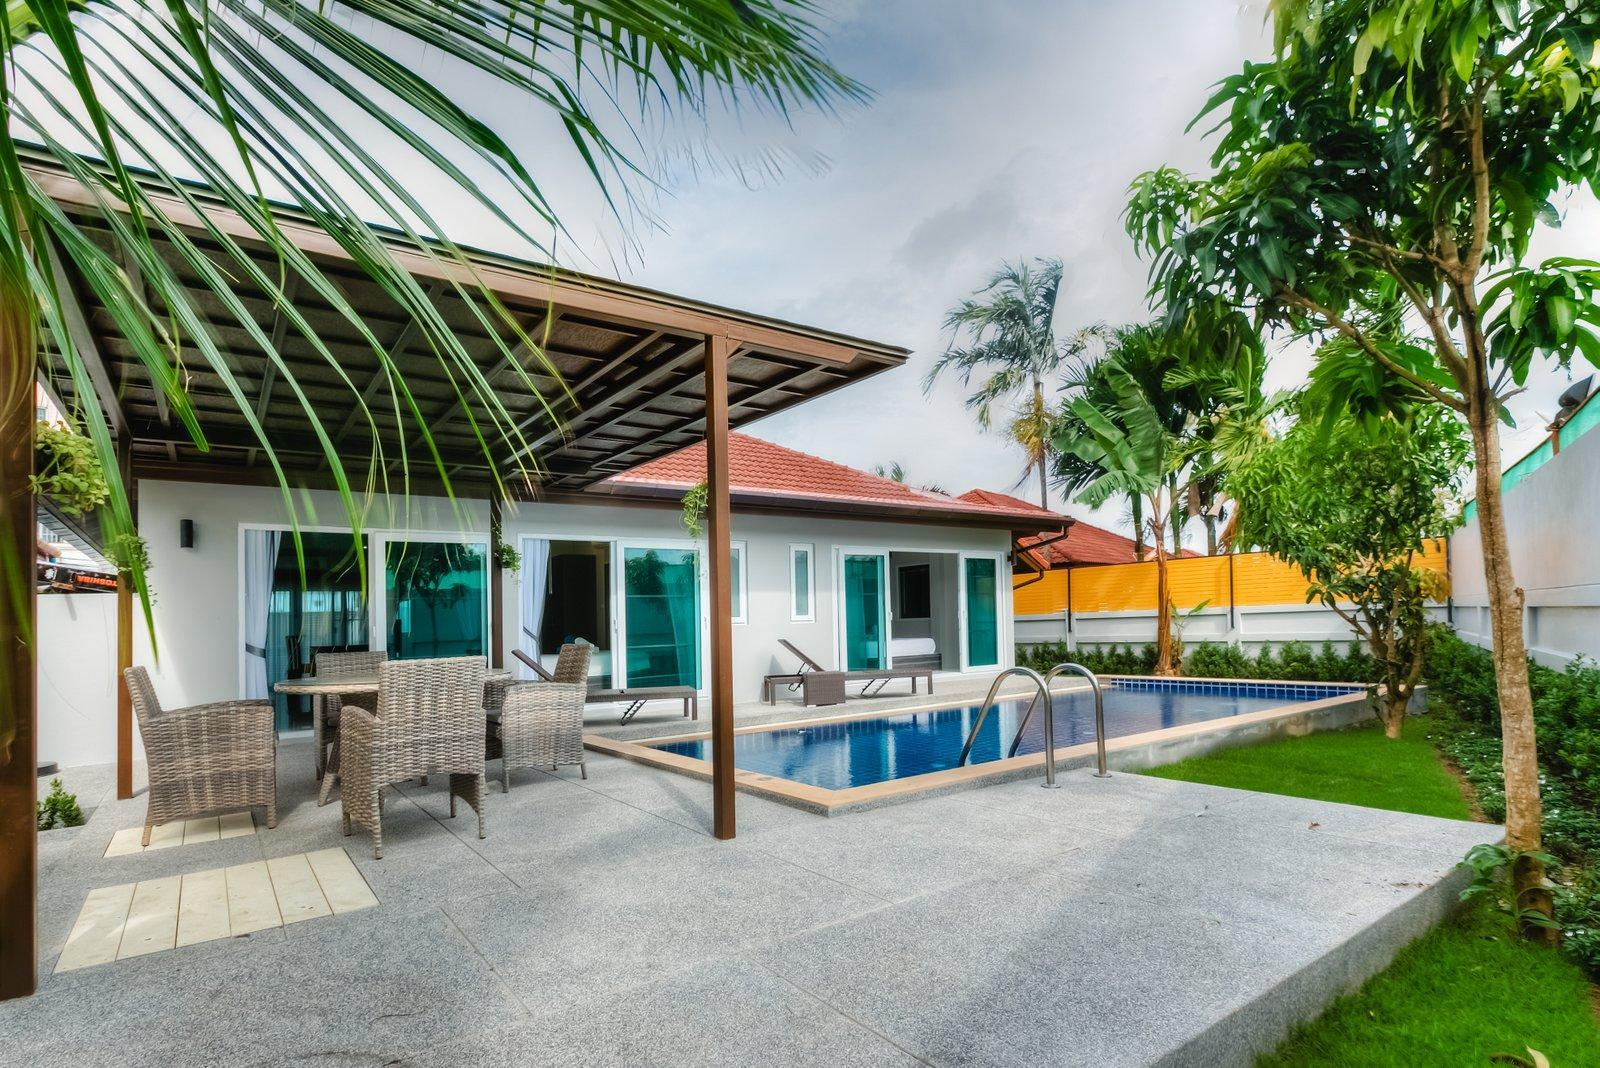 Hotels Review: Brand New 3BD Pool villa in Bangtao – Rates, Picture and Deals